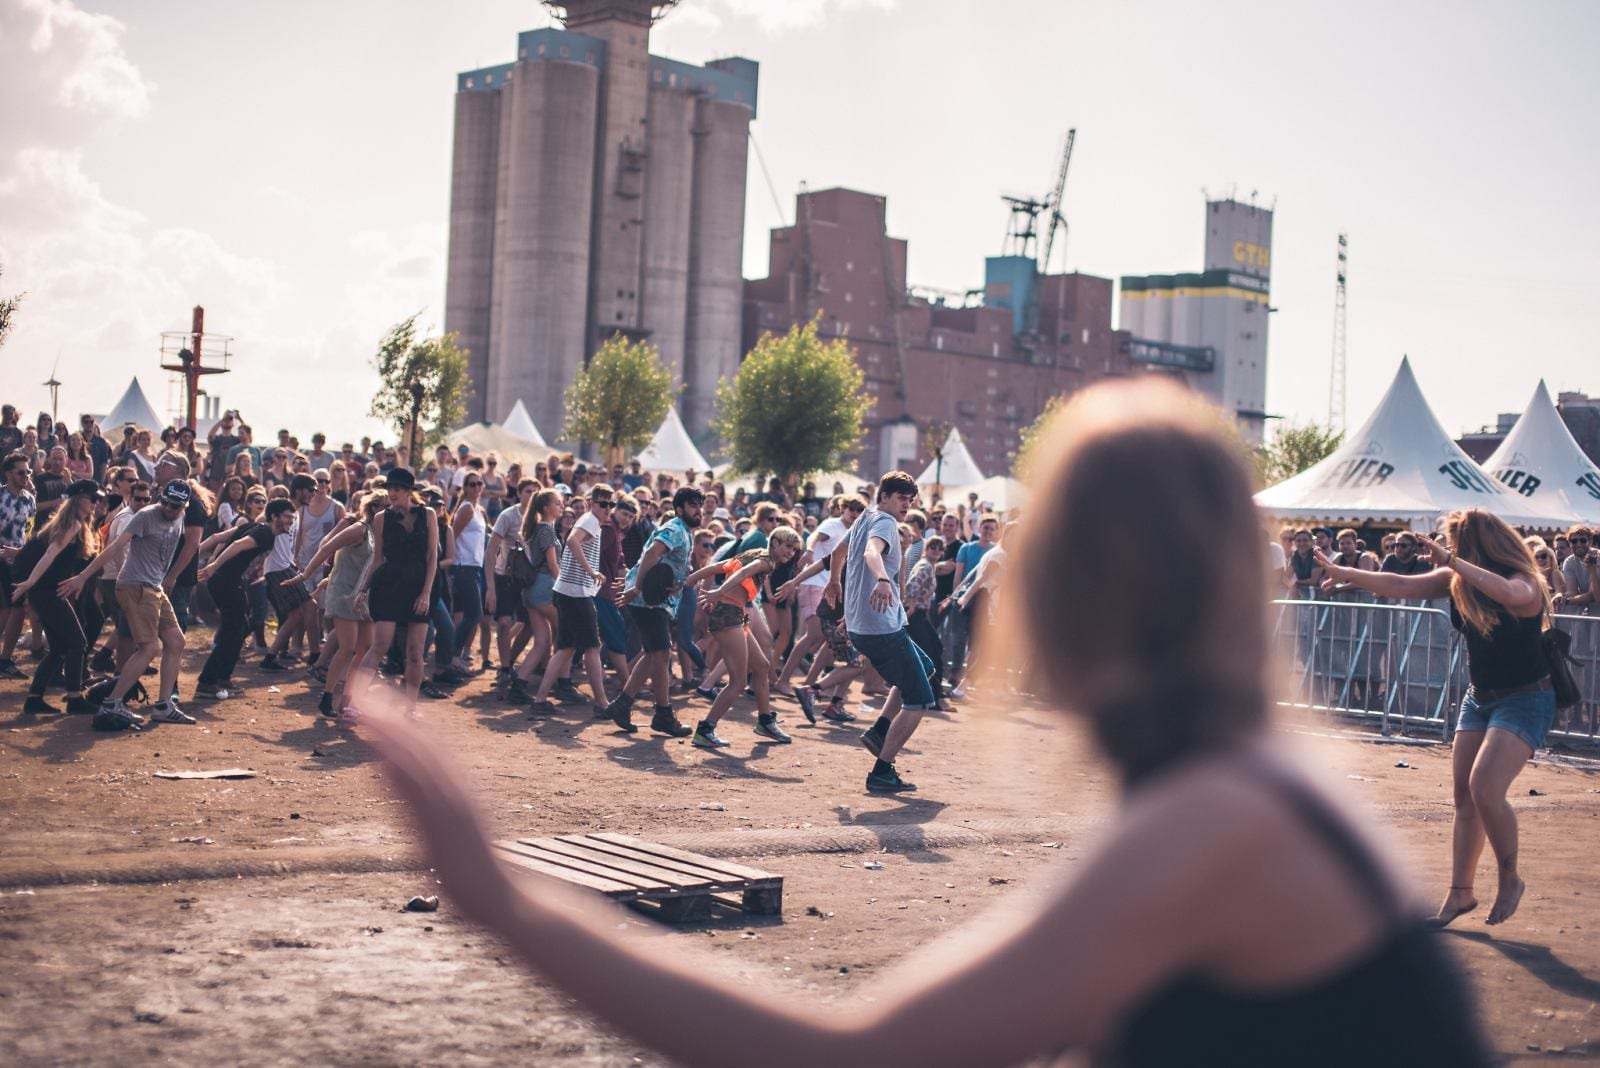 041 ms dockville 2015 dan deacon 3 - MS Dockville 2015